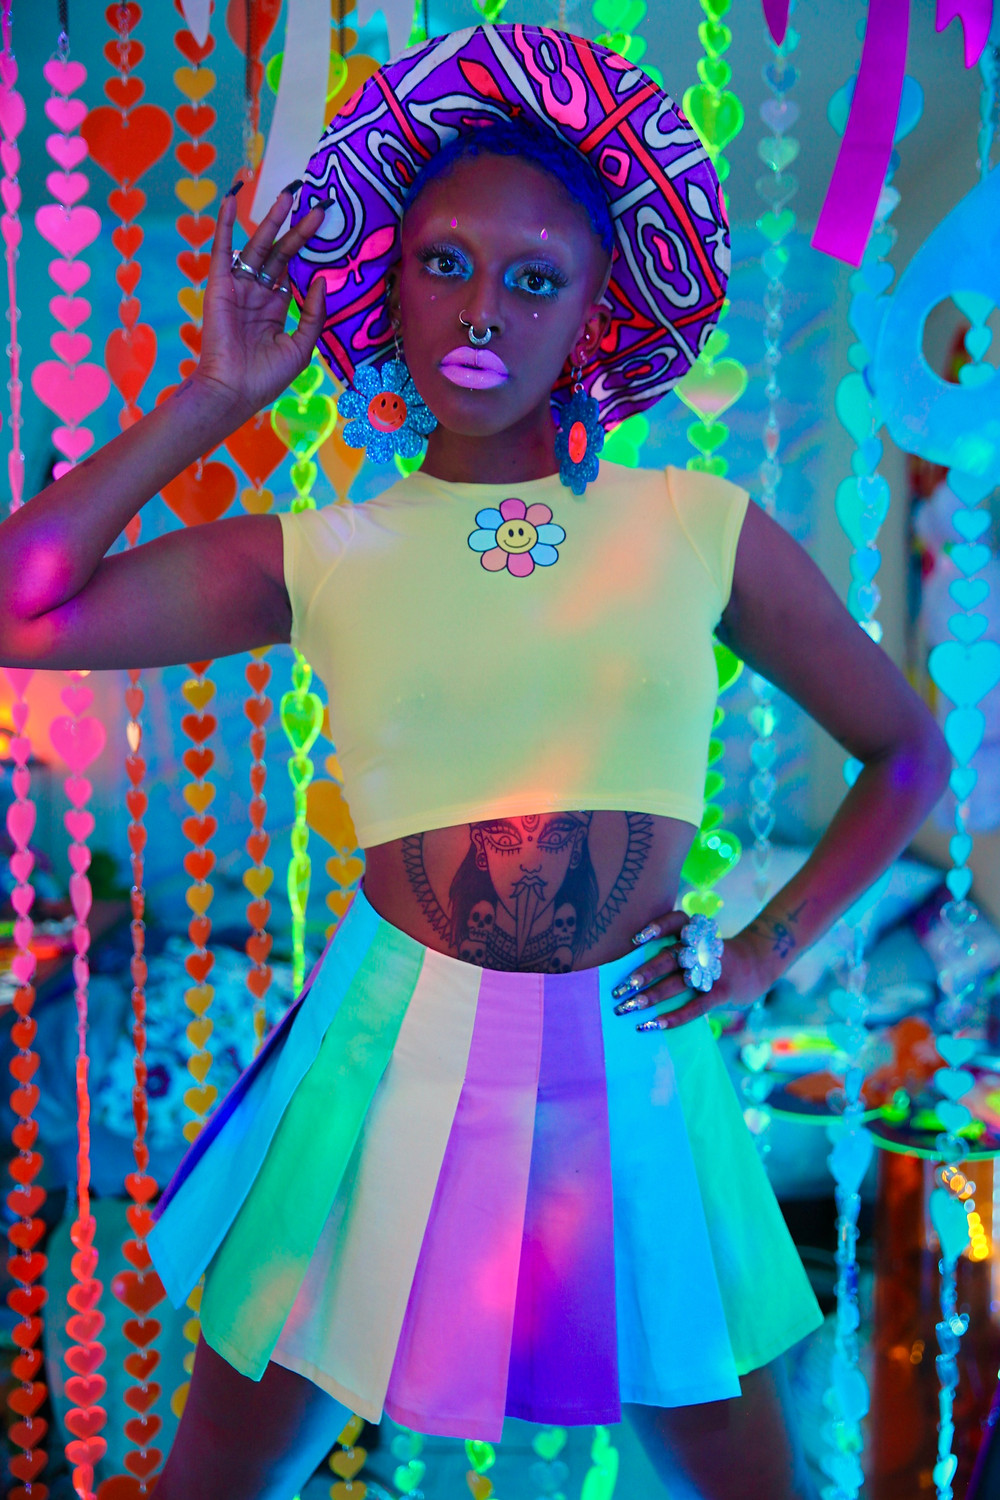 marina fini, los angeles, plexiglas, flower, aliens, happy happie, wicked hippie,  jewelry, psychedelic, colors, chakras, crystals, goddessphere, motelscape, venus, installations, fine art, interview, howl magazine, new york, stripper, lgbtq, queer, body positive, sexuality, interview